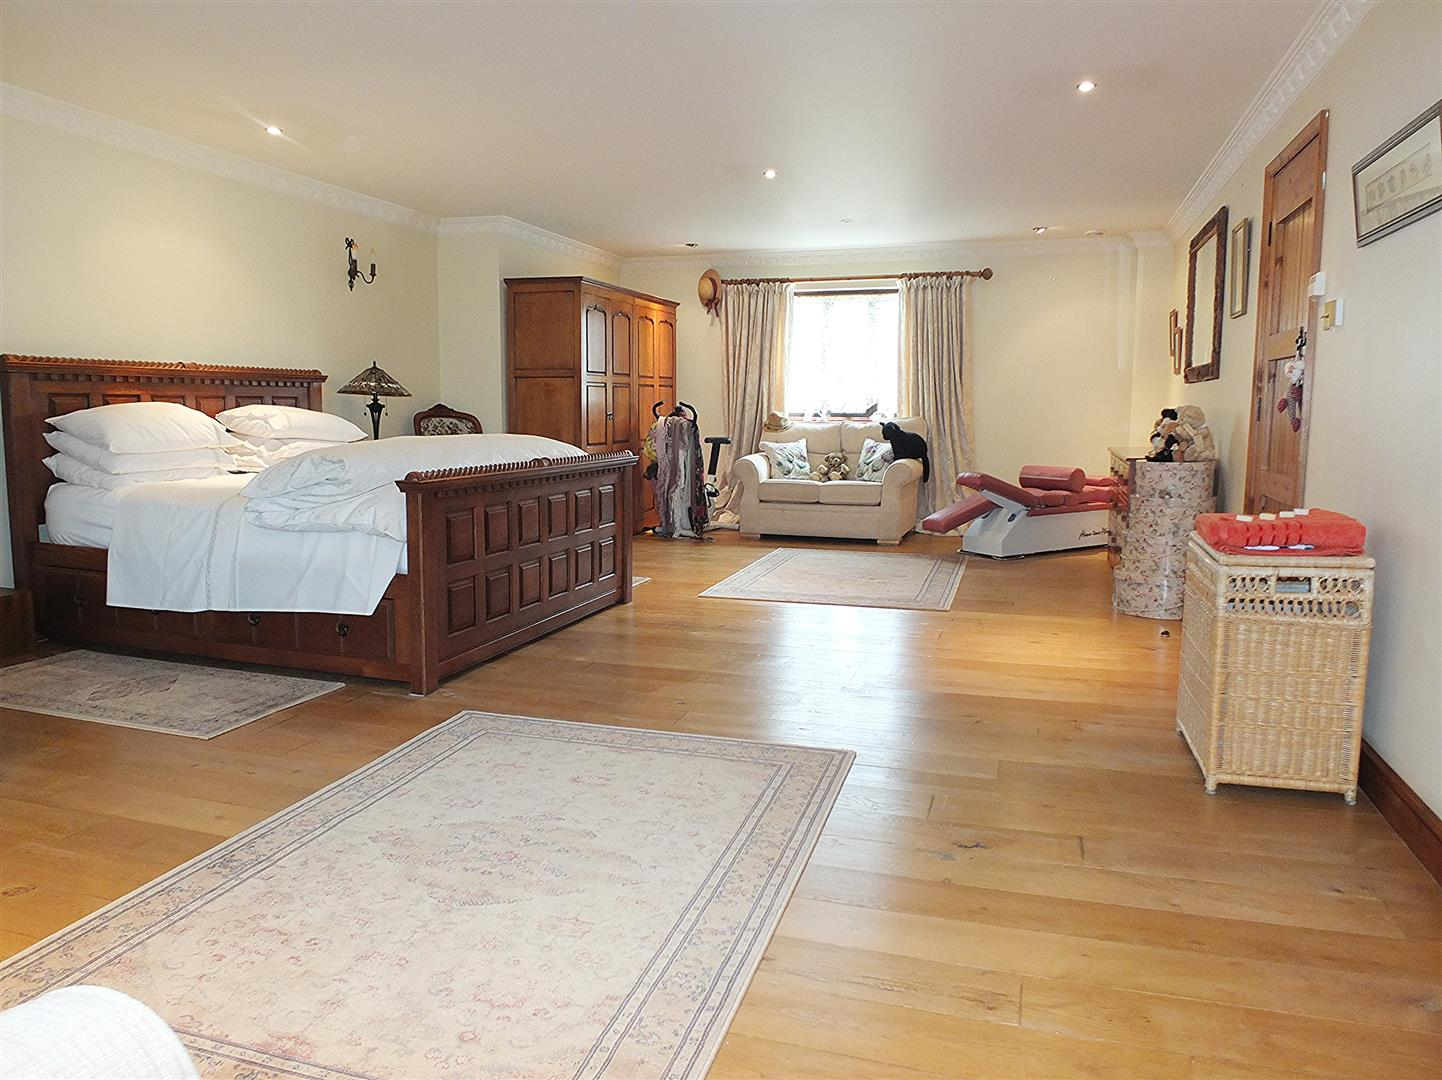 5 bed detached house for sale in Boston, PE20 2DB 13